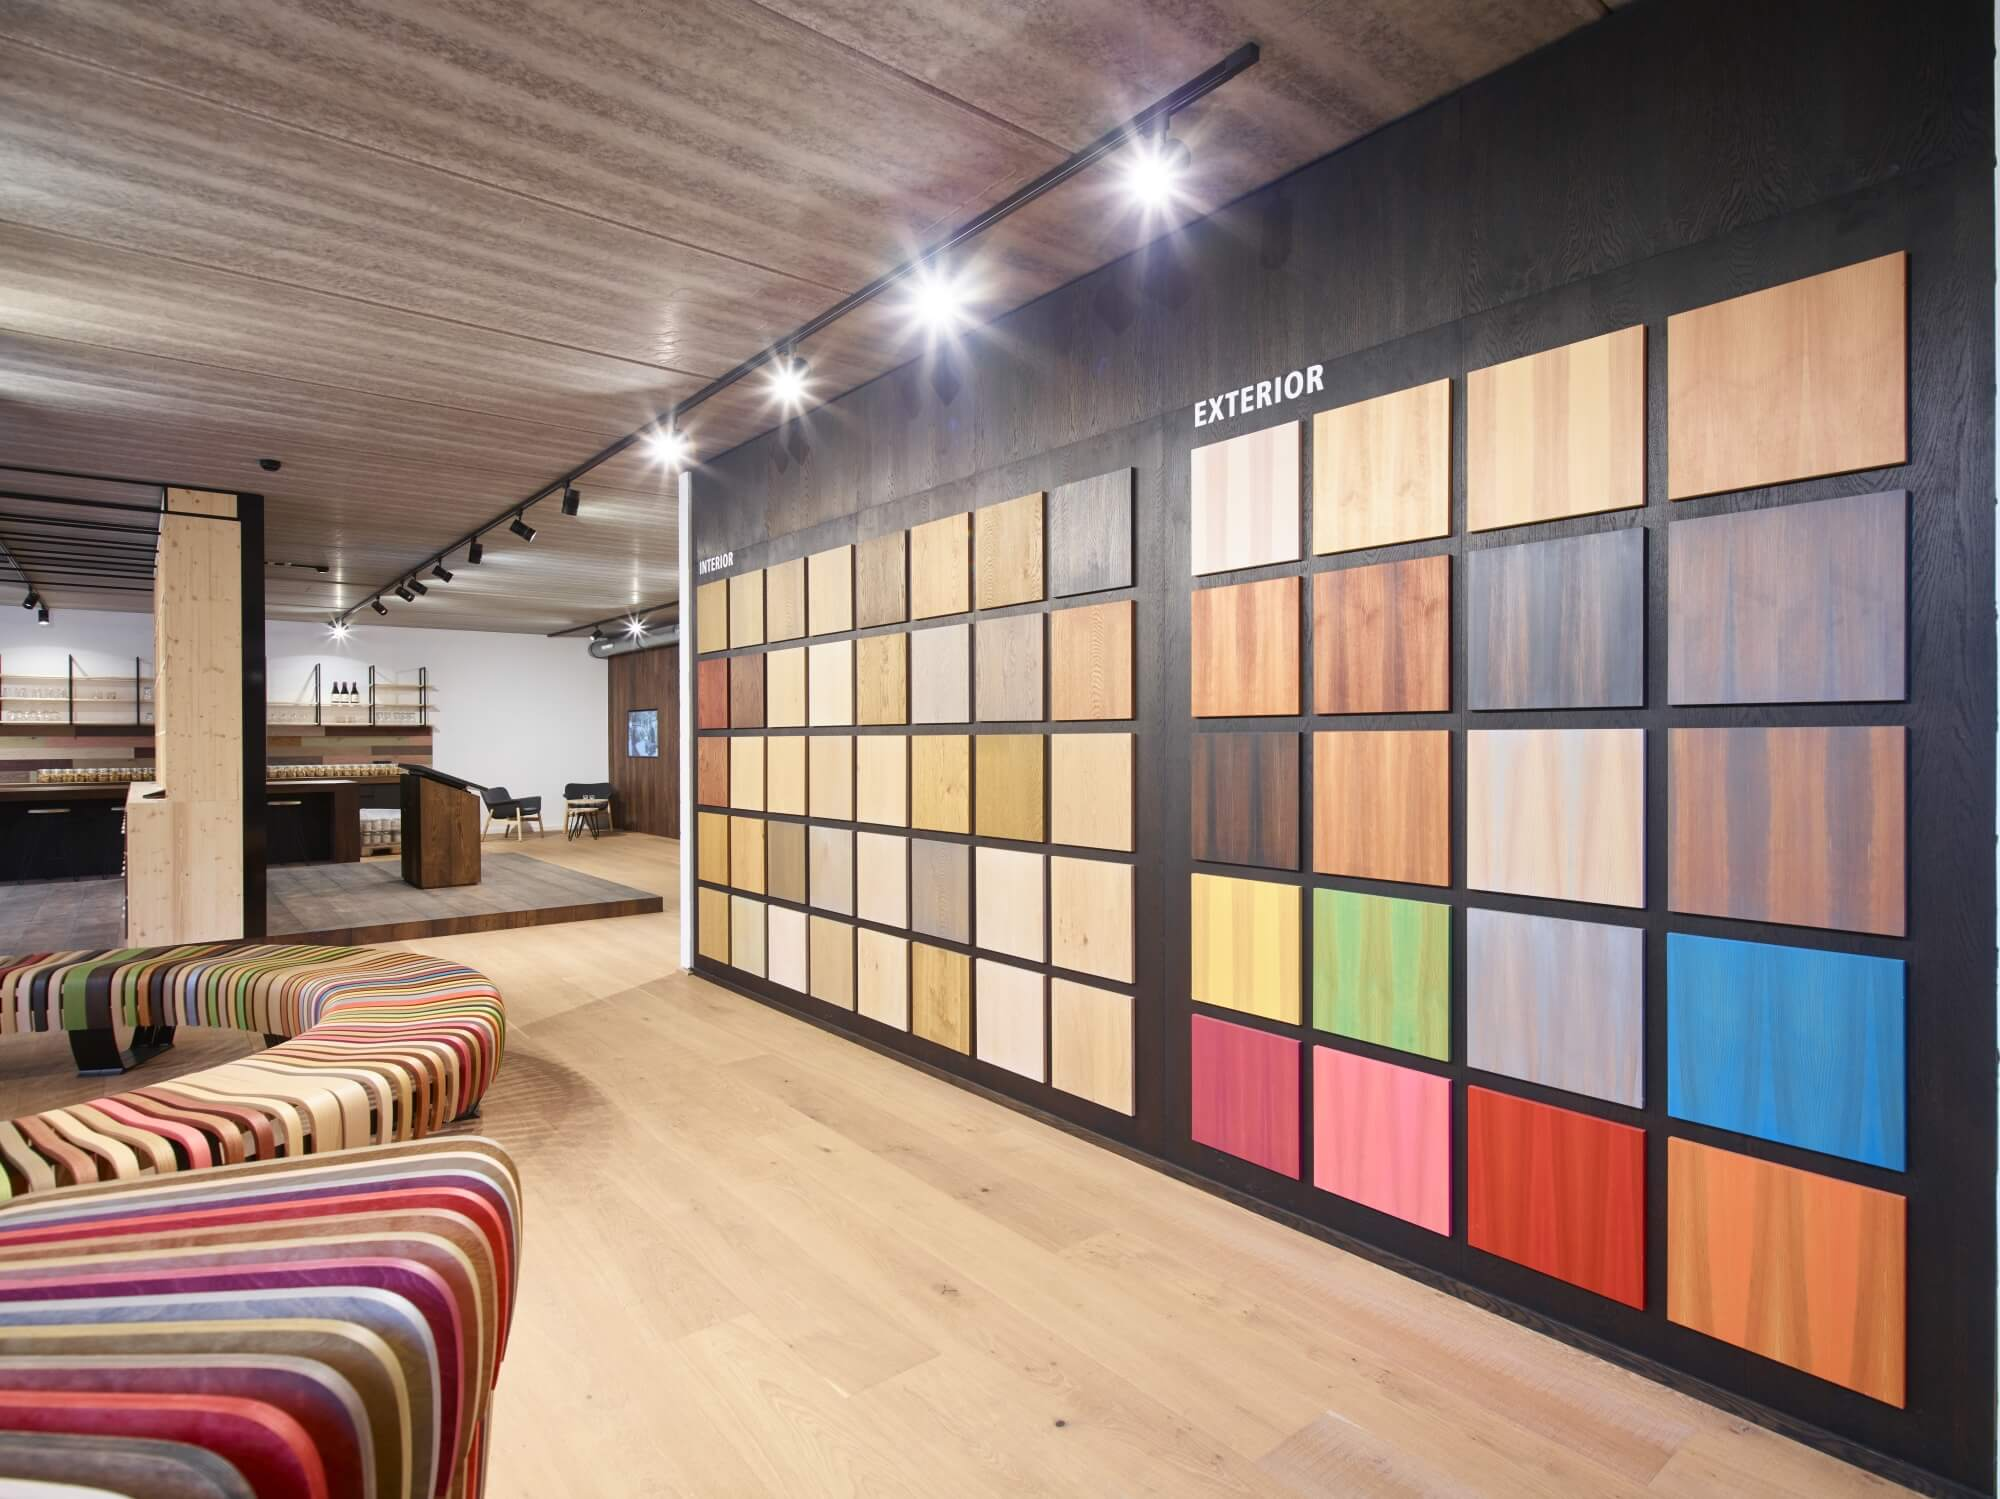 Rubio Monocoat colors on display at the Rubio Monocoat headquarters in Belgium.